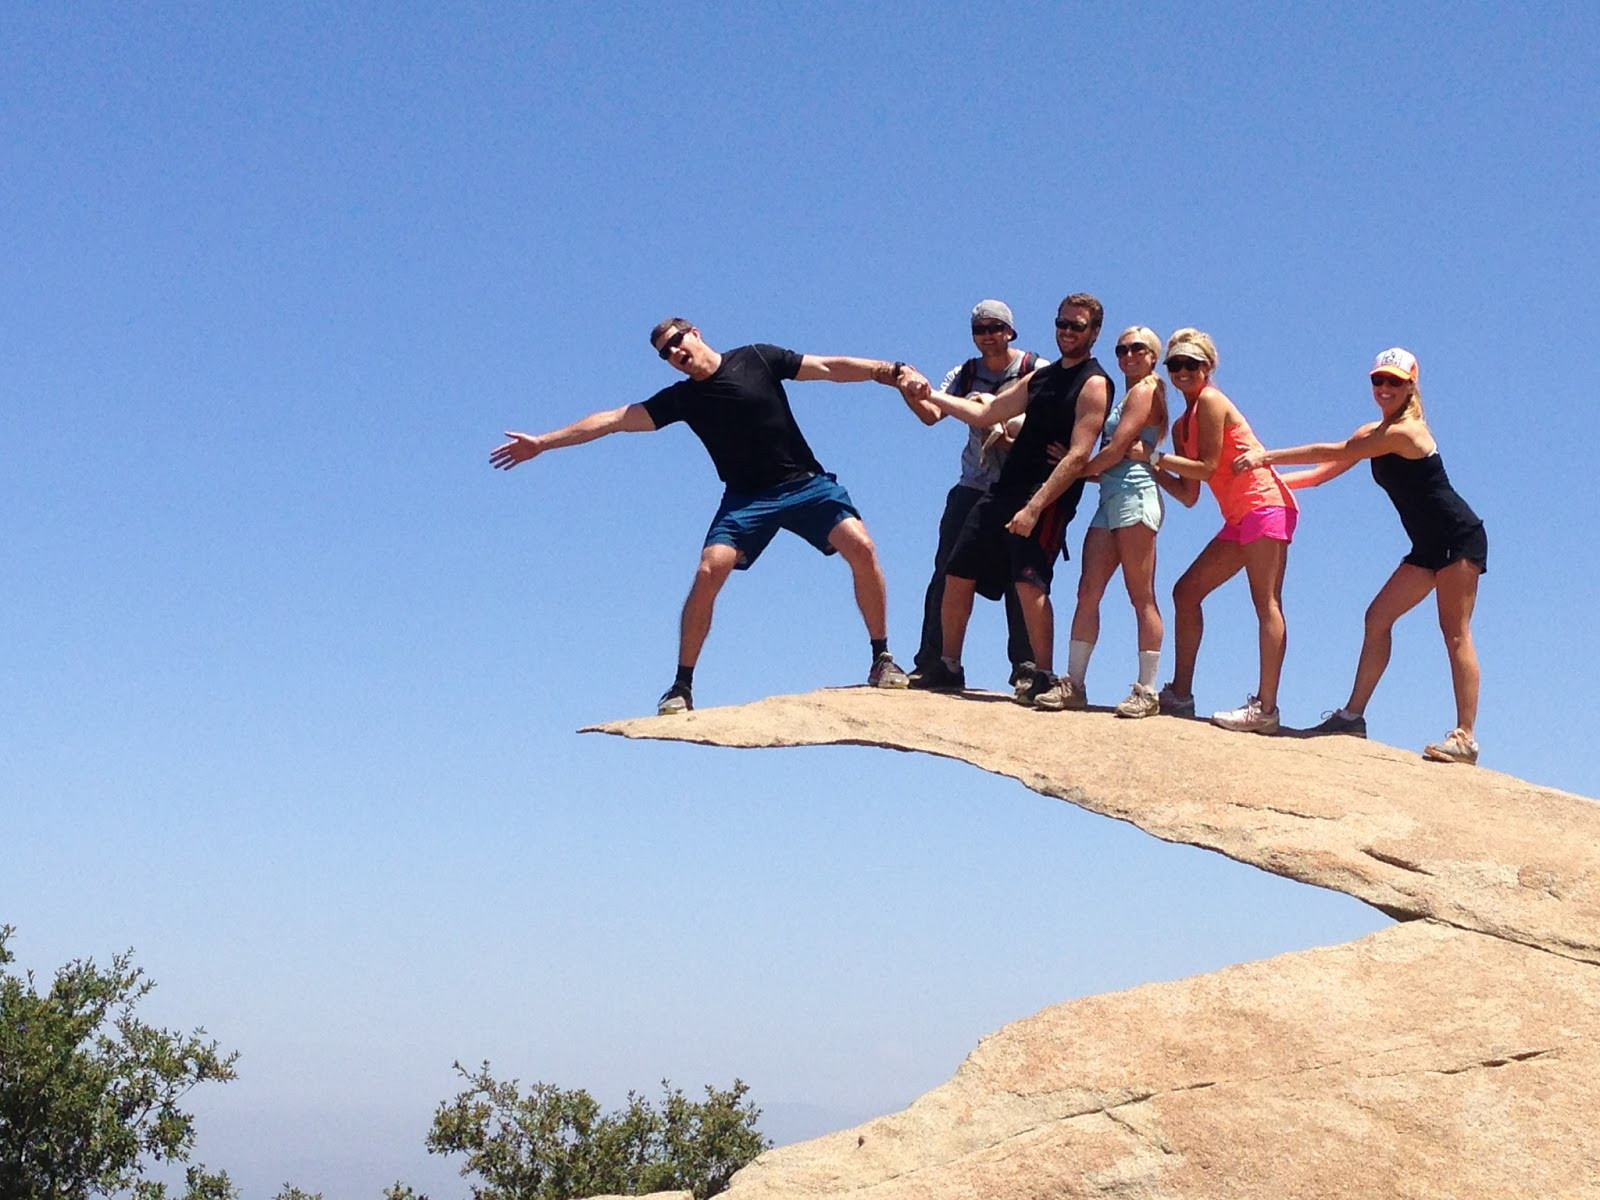 Potato Chip Rock Trail  Potato Chip Rock Hiking Trail Go Hike It